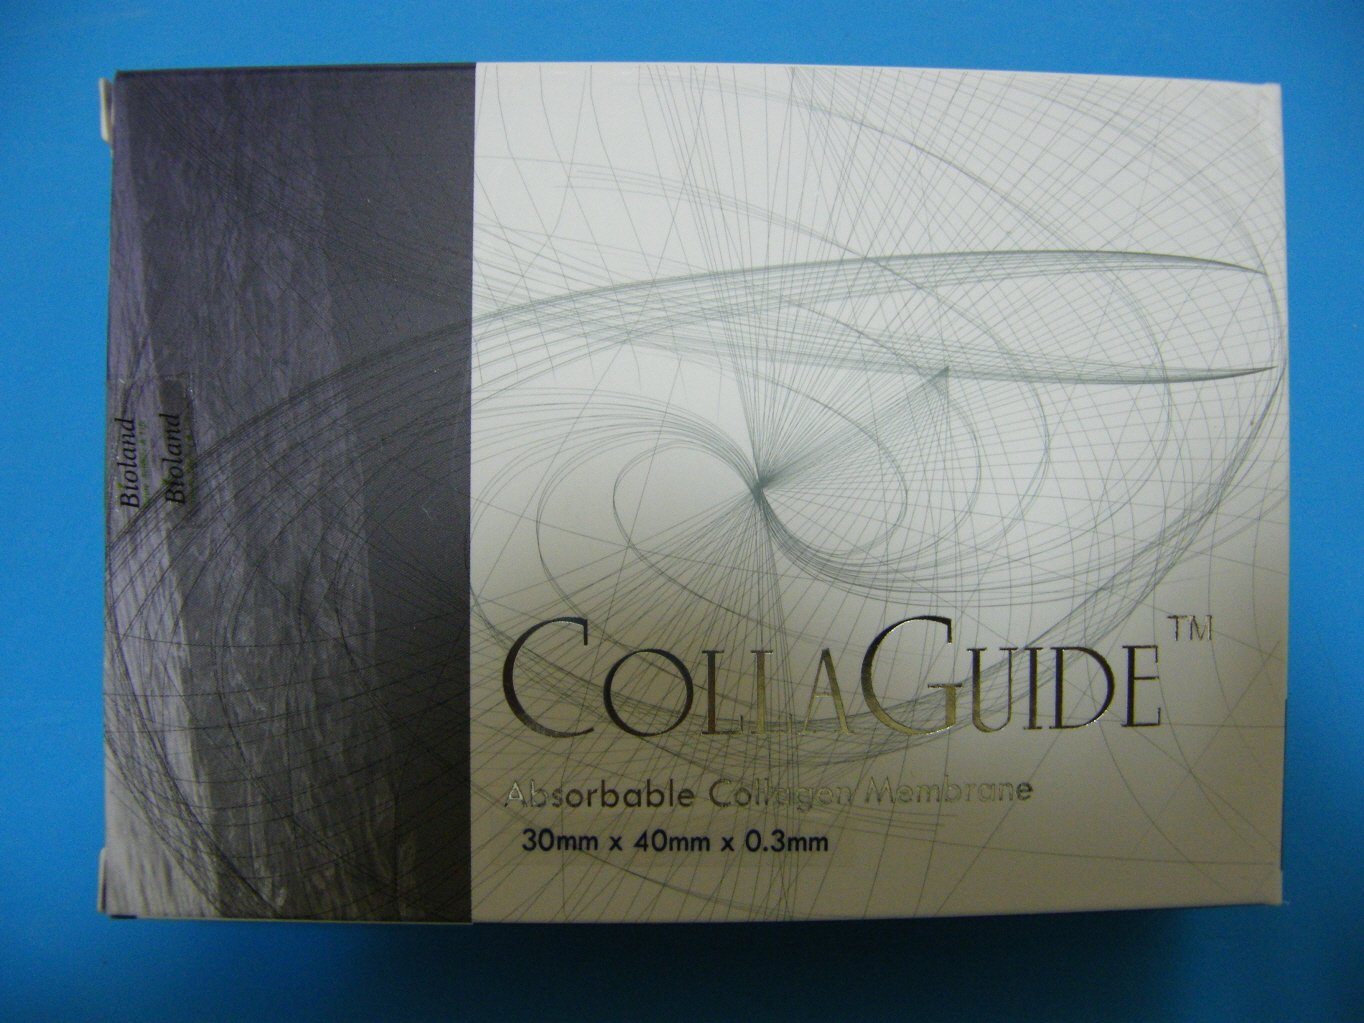 Dental Absorbable Collagen Membrane 15 * 30mm(Certified by CE1023, KFDA) FREE SHIPPING